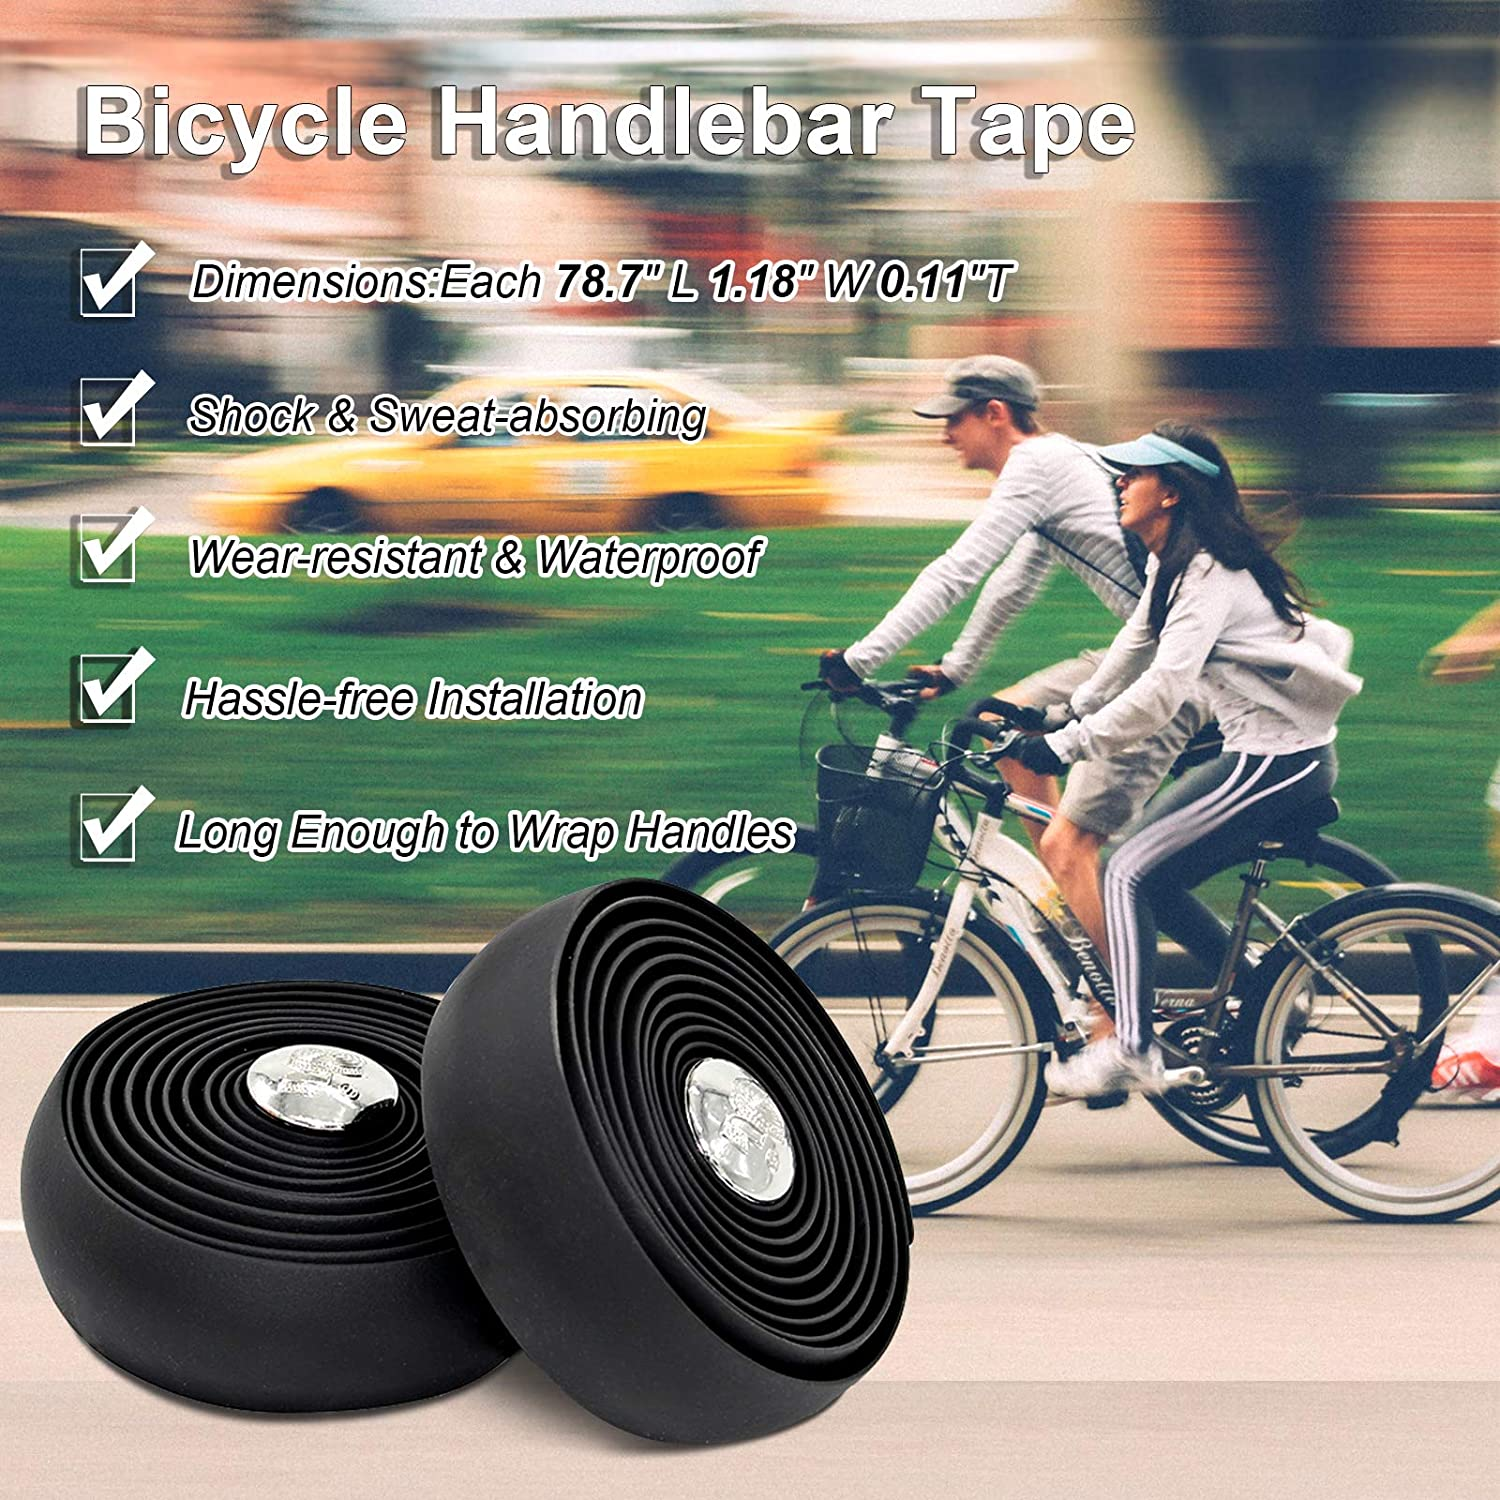 EUGO Road Bicycle Bar Tapes EVA Cycling Handle Wraps Black Sticky Bike Handlebar Tapes with Bar End Plugs and Finishing Adhesive Tapes for Shock/&Sweat Absorbing 2 Rolls